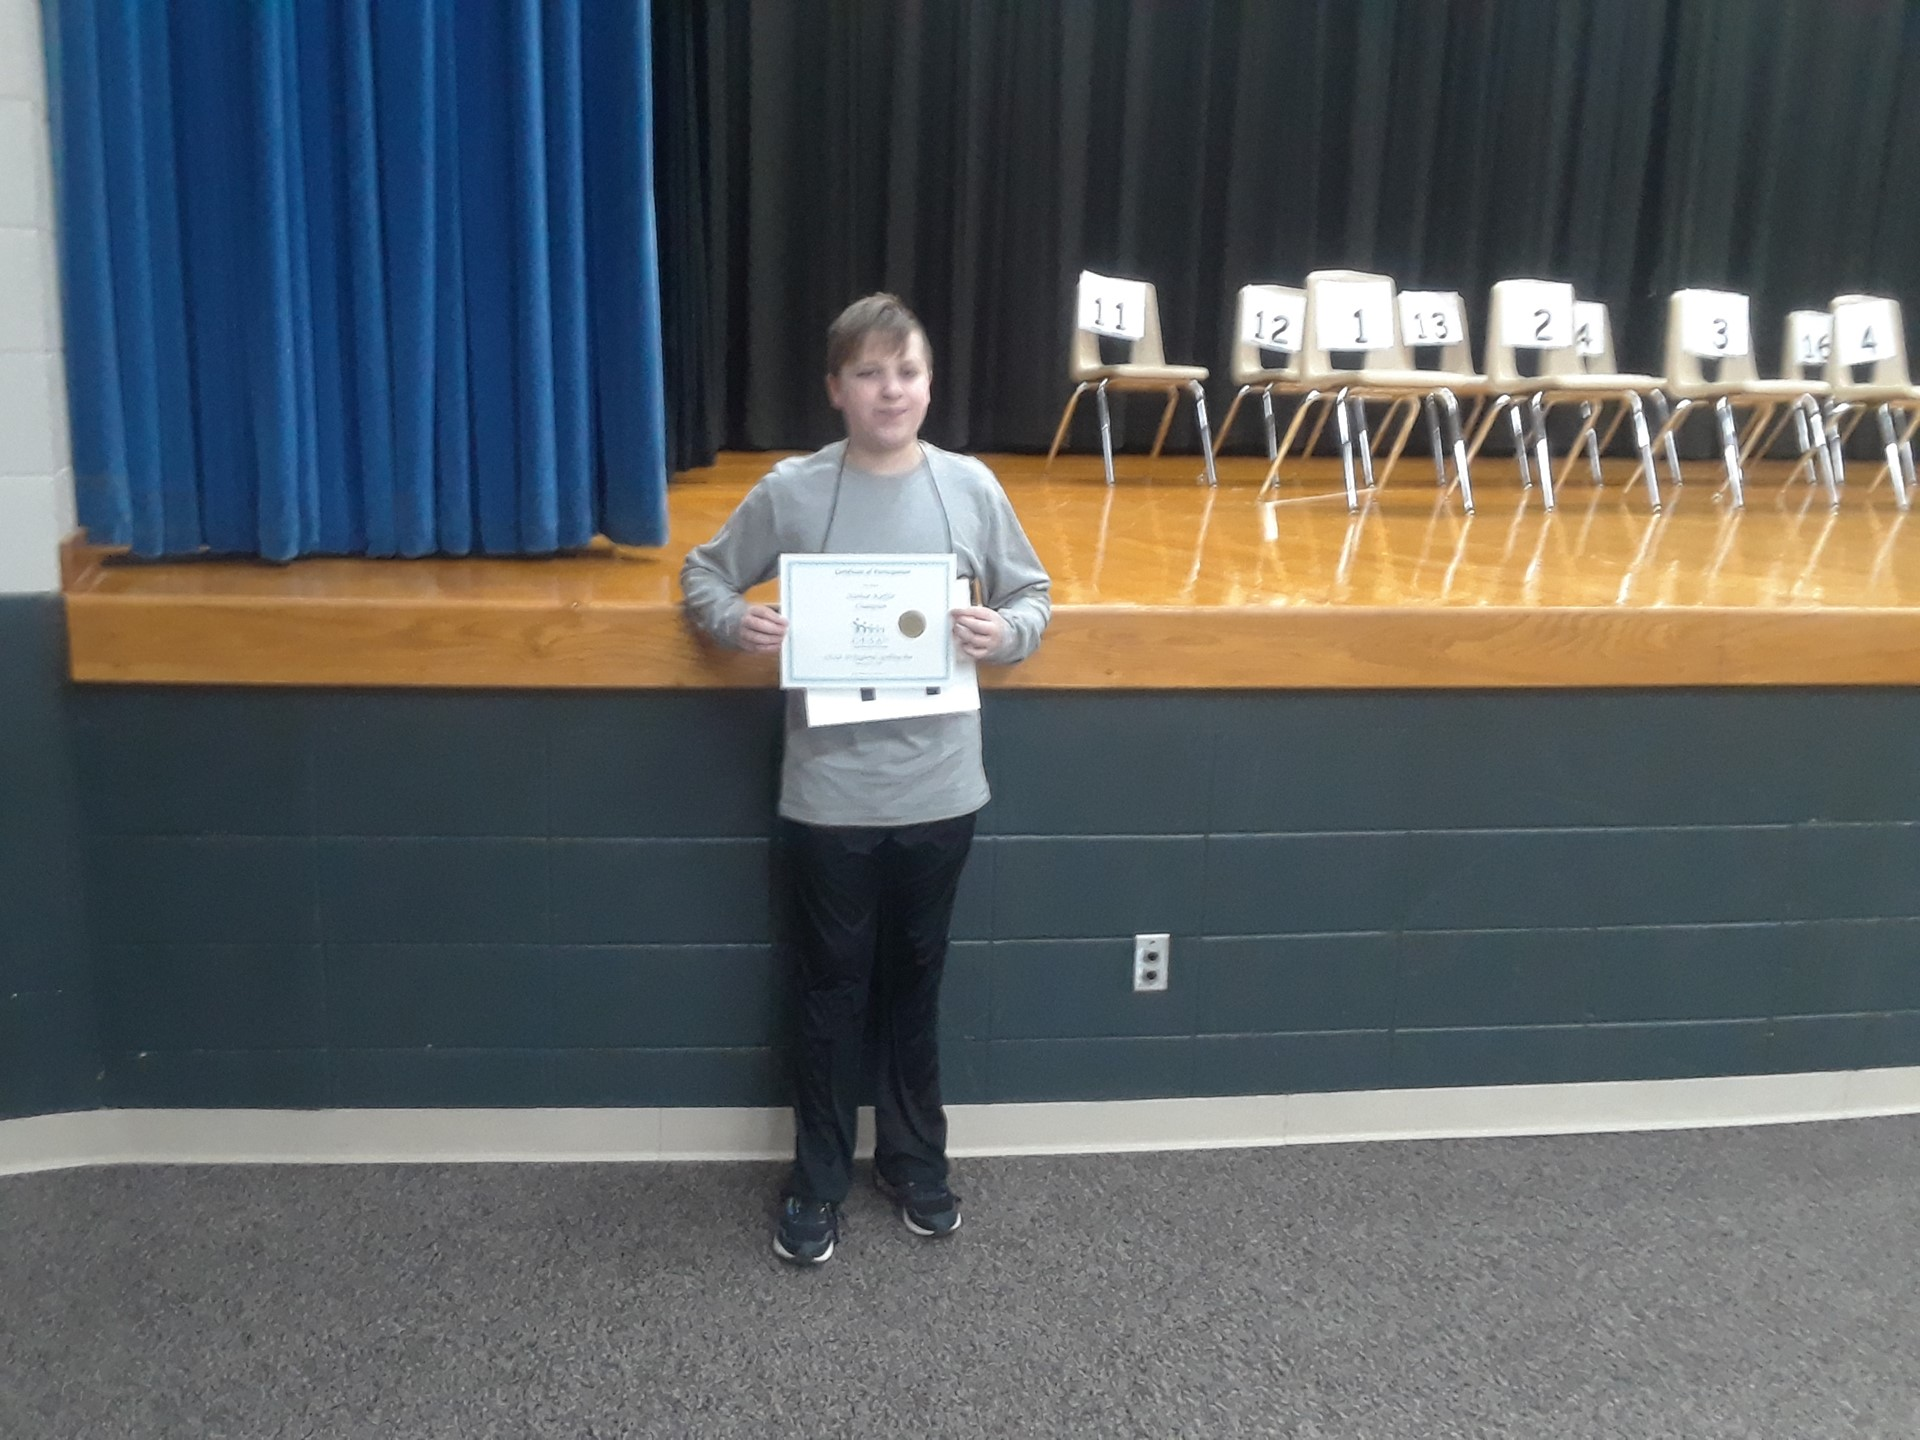 Nathan Kieffer participated in the CESA 10 Spelling Bee